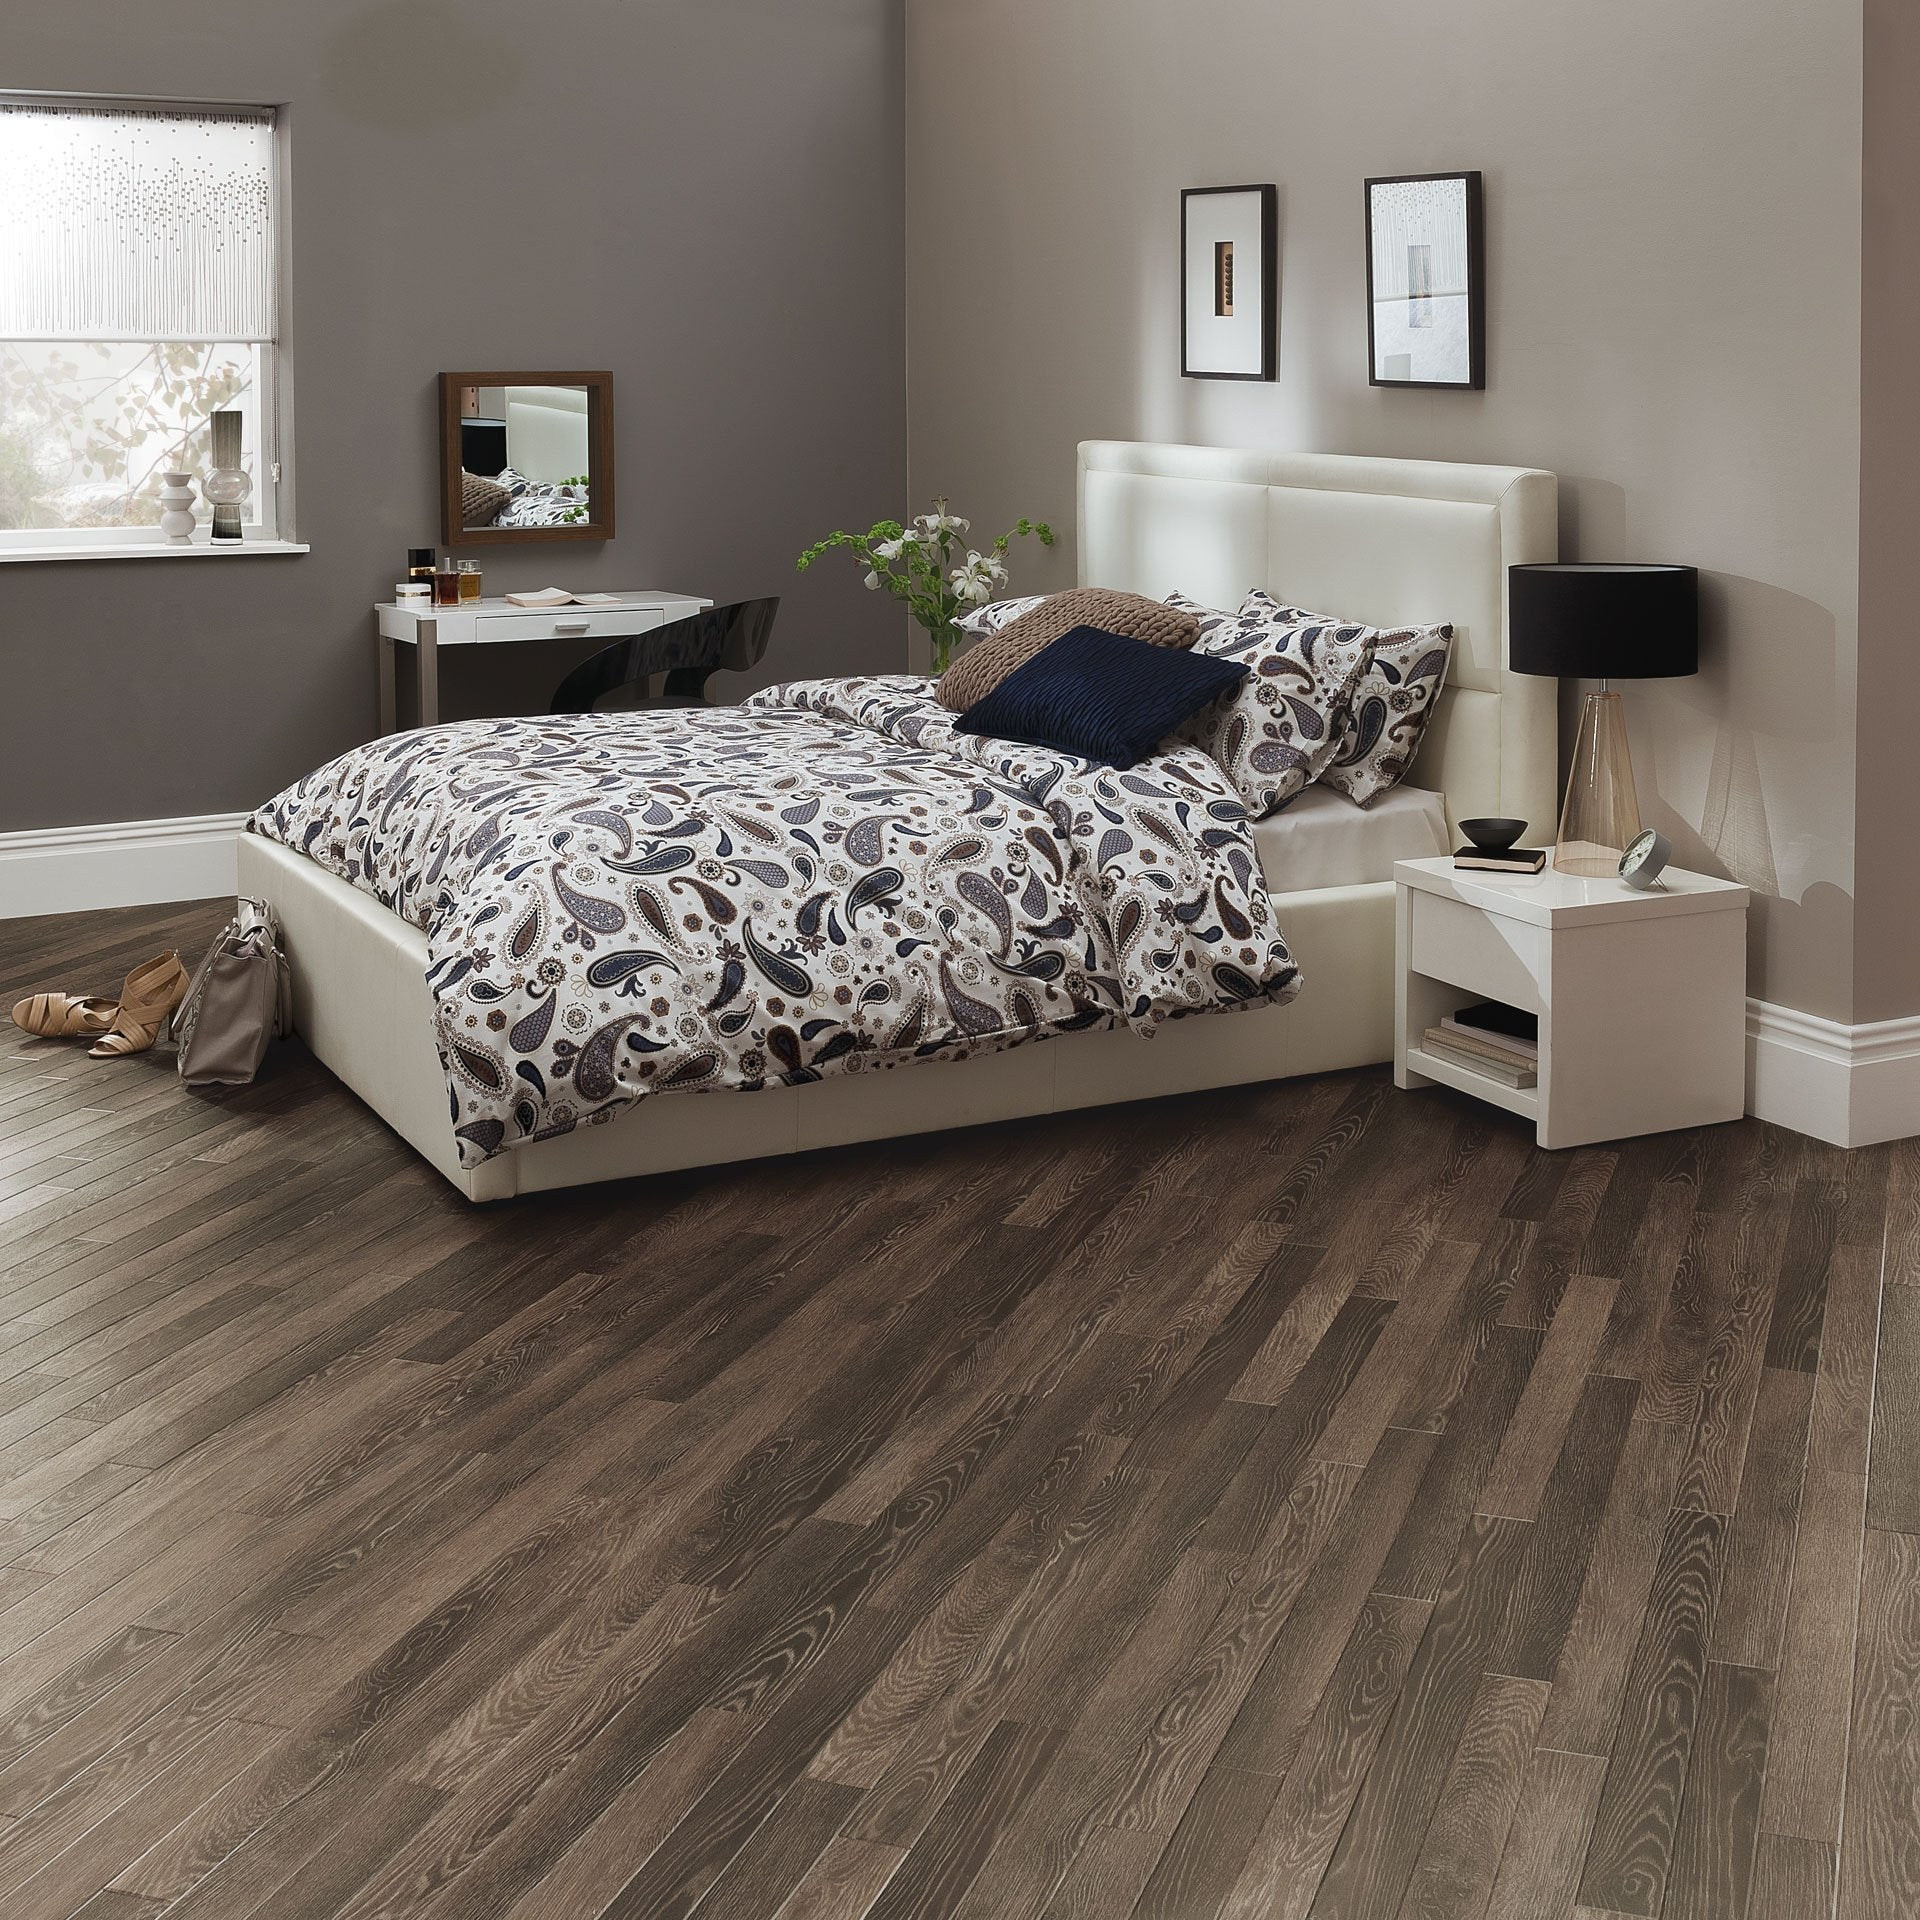 MV1114 Limed Cotton Oak